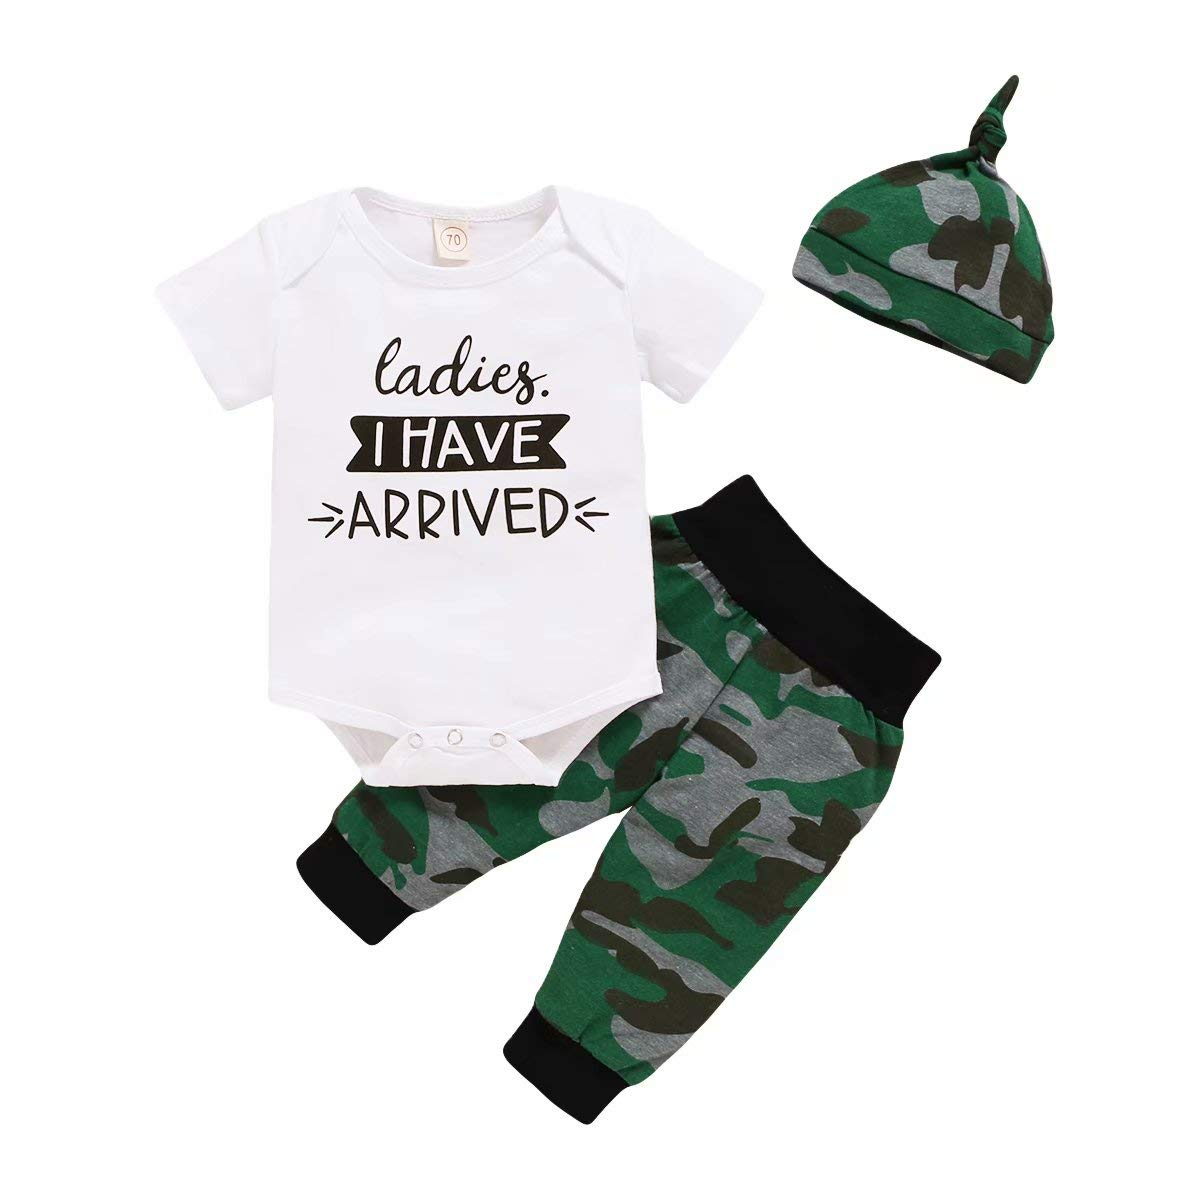 CETEPY Baby Boy Clothes Newborn Outfits Summer Romper Shorts Gifts 3Pcs Letter Printed Tops + Pants + Hats